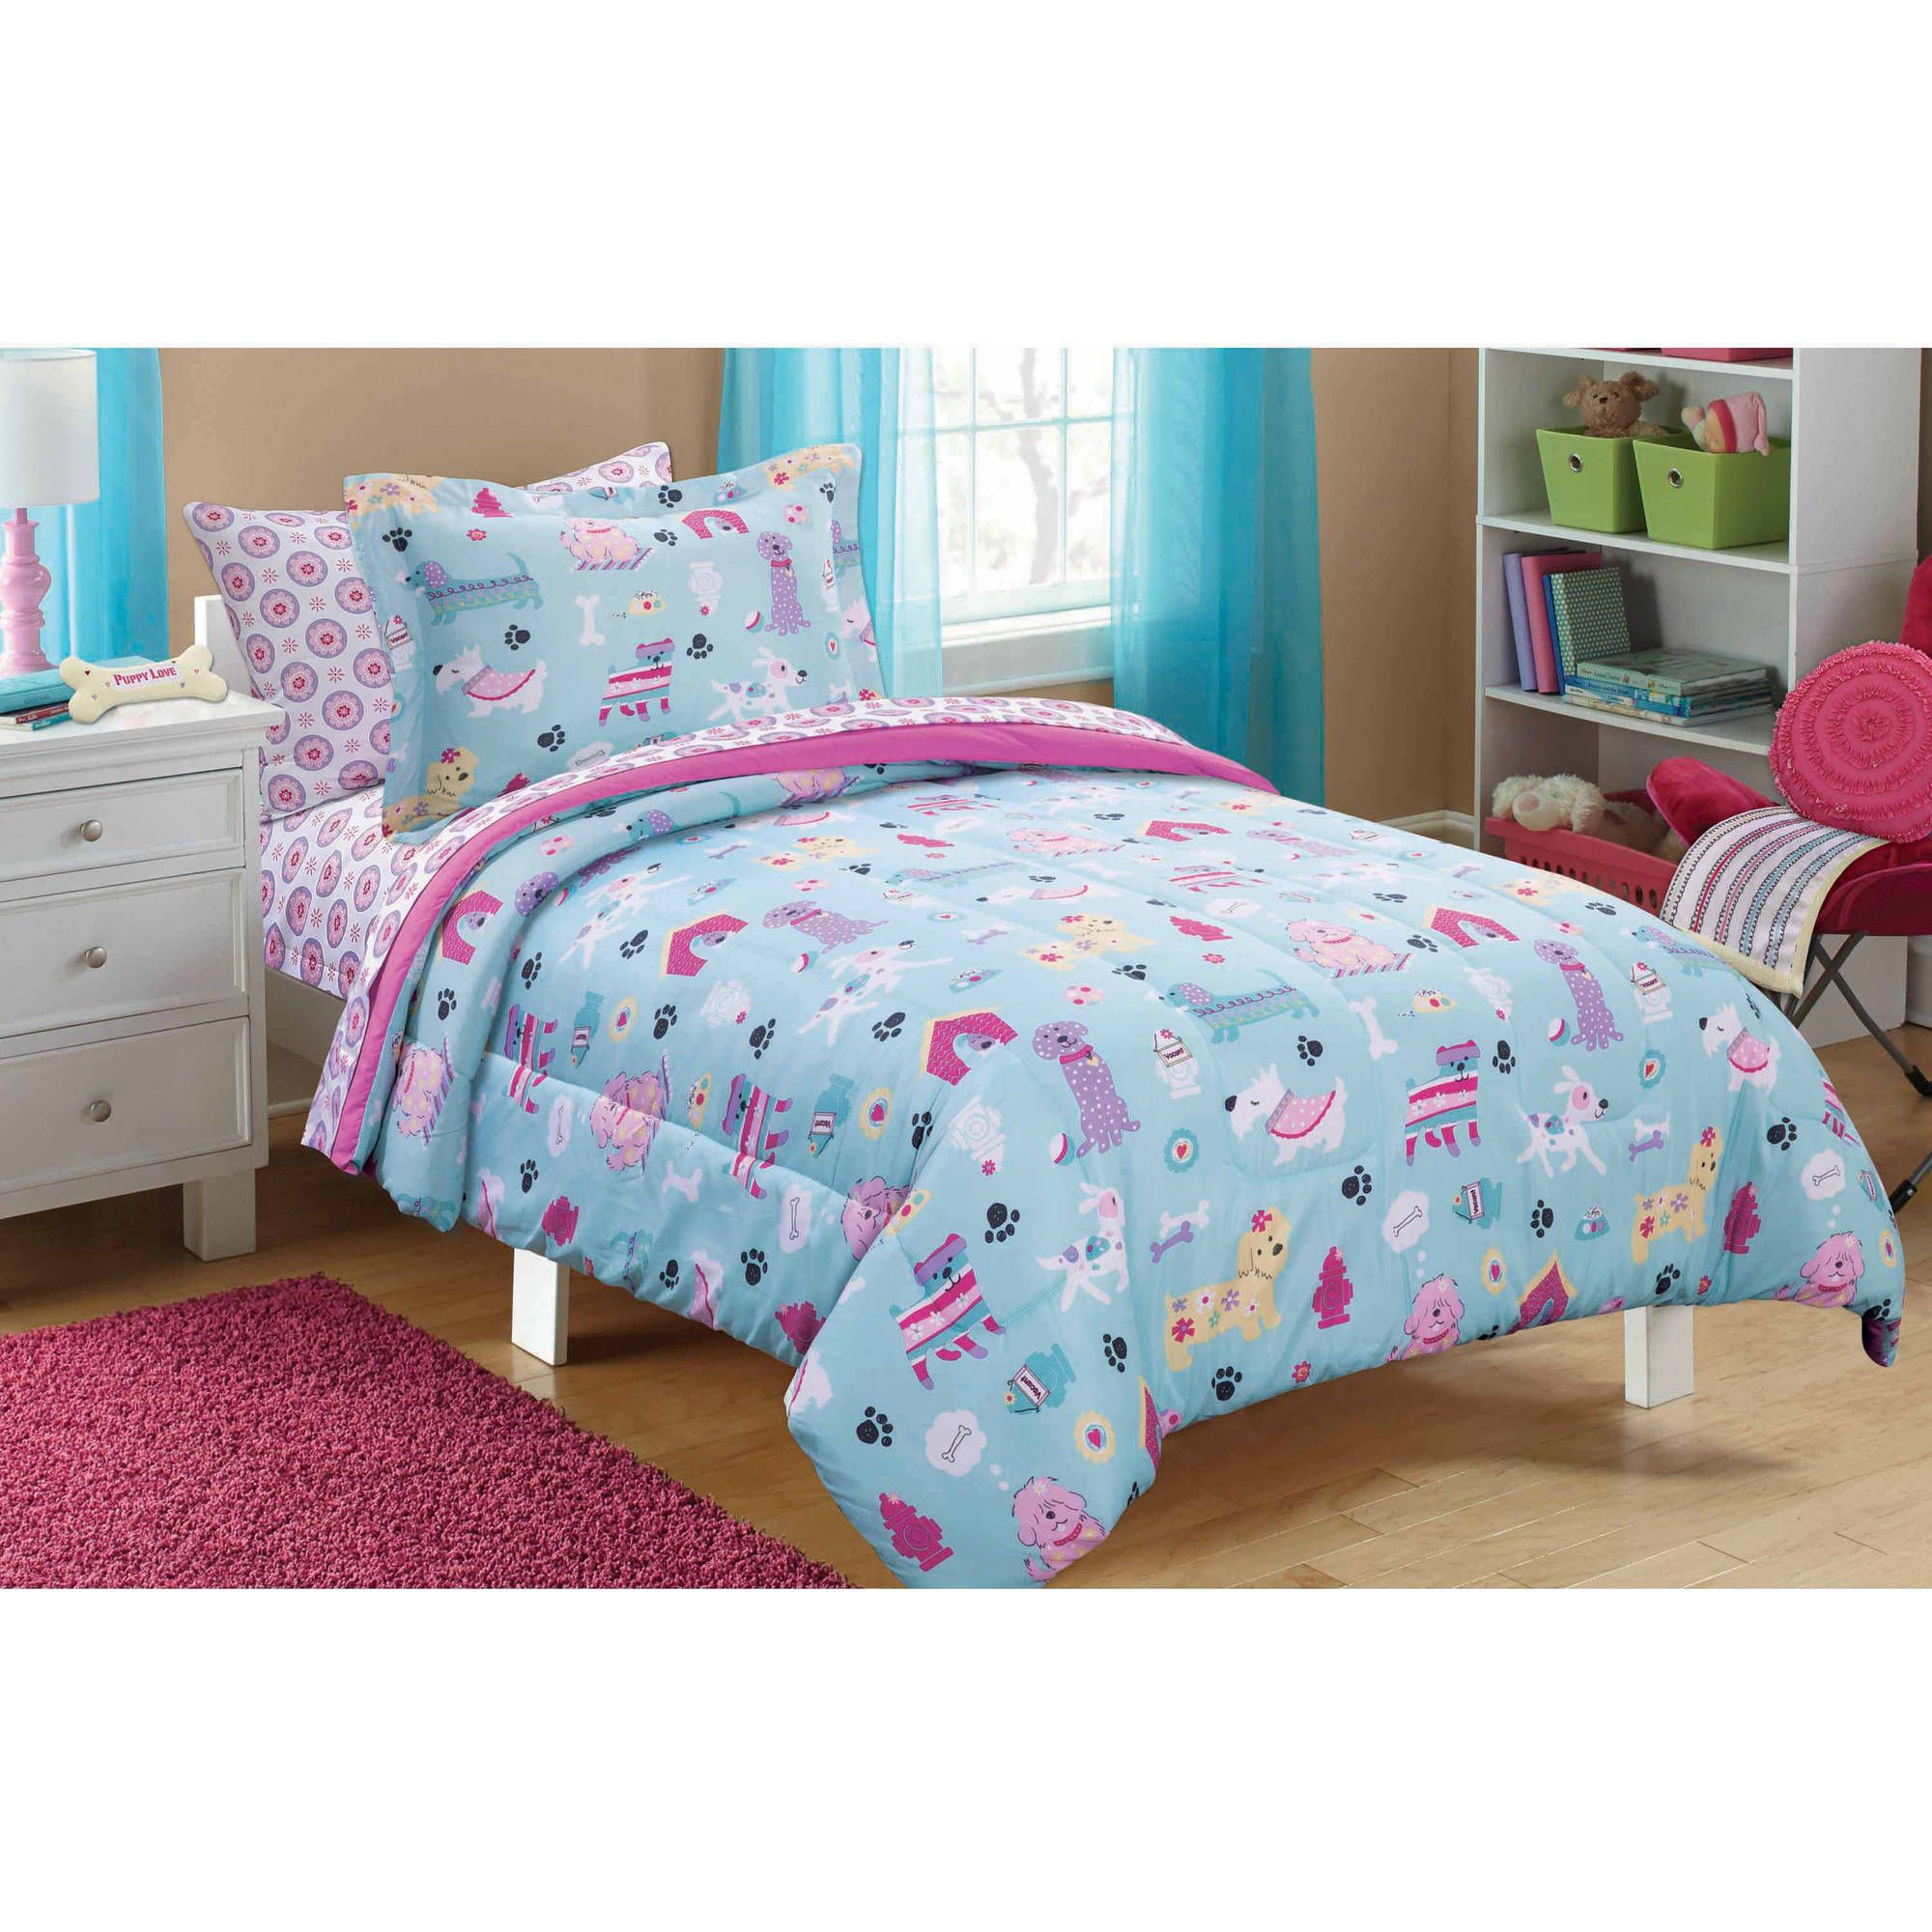 zone pink sheet in printed shipping today penelope poodle free with kids a overstock set bag bedding product bath the mi bed